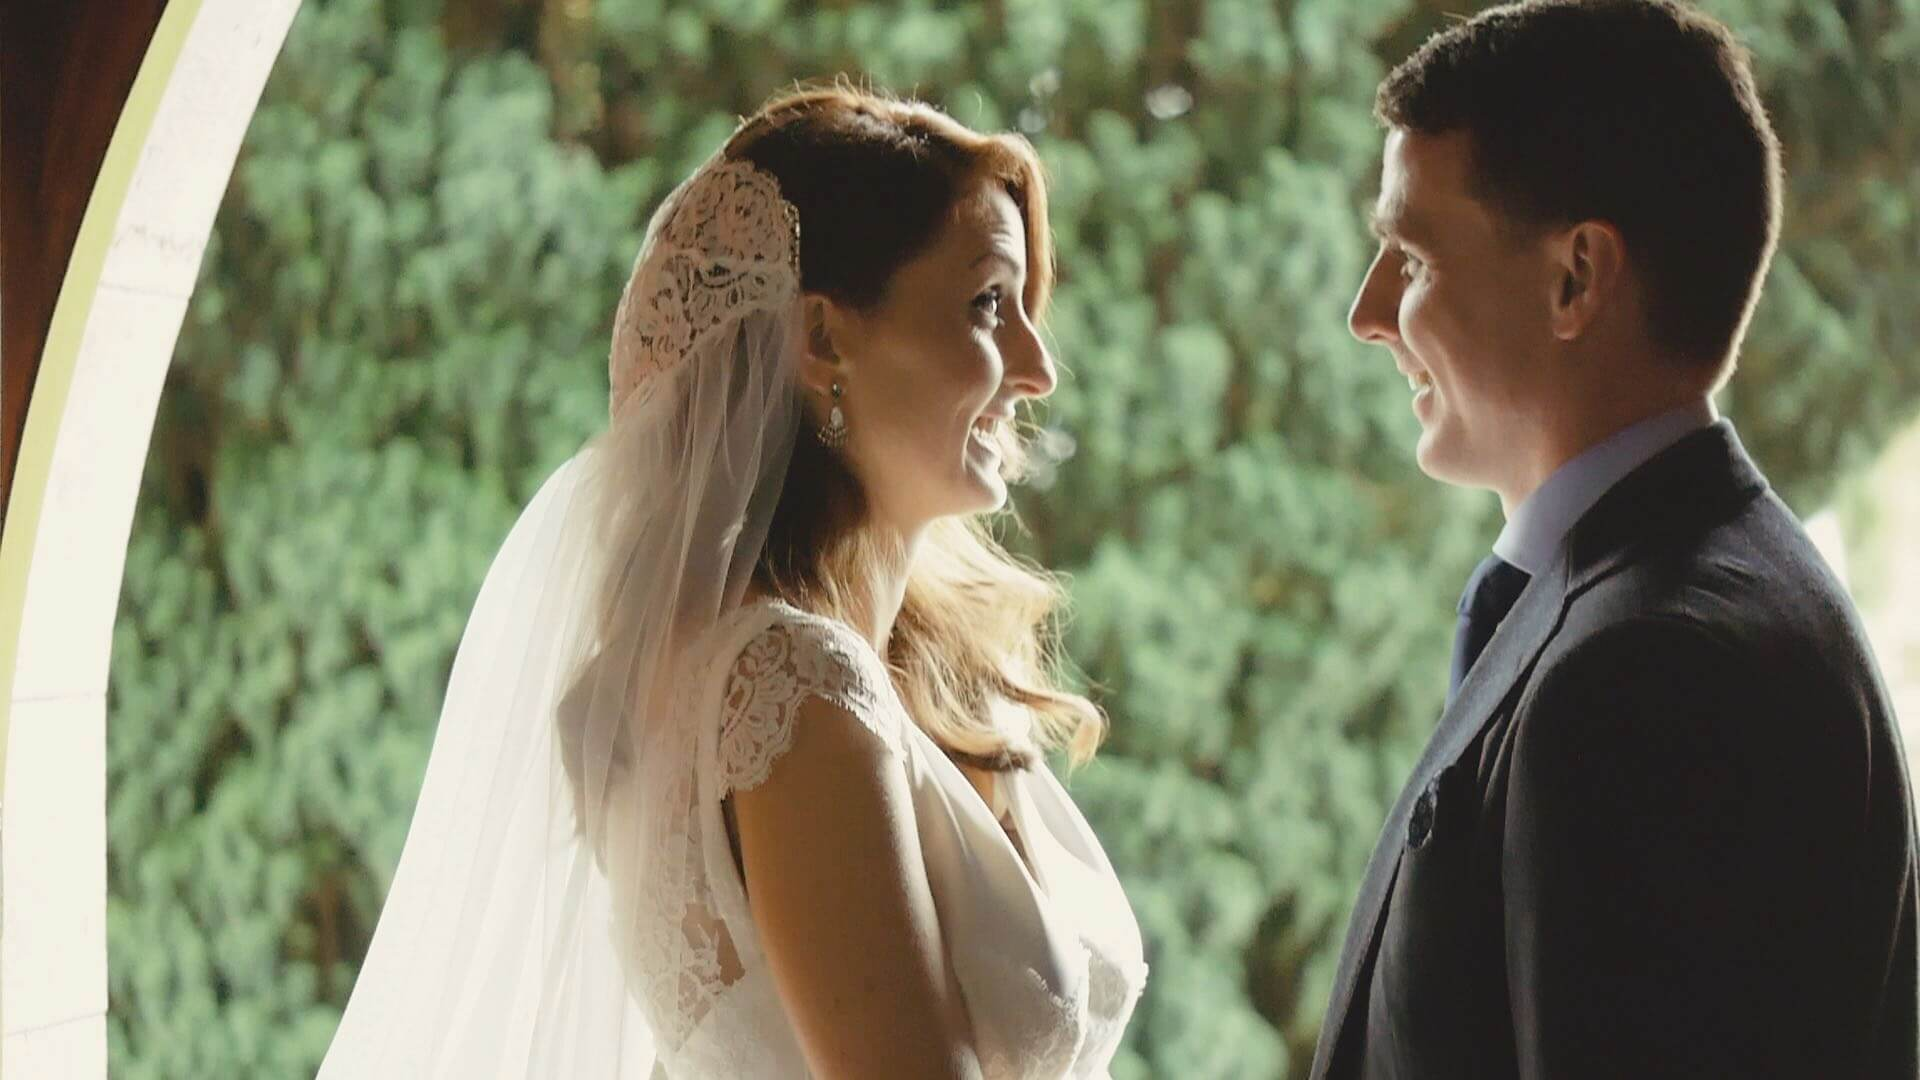 Sinead & Paul, Wedding Video at Ballymagarvey Village, Co. Meath